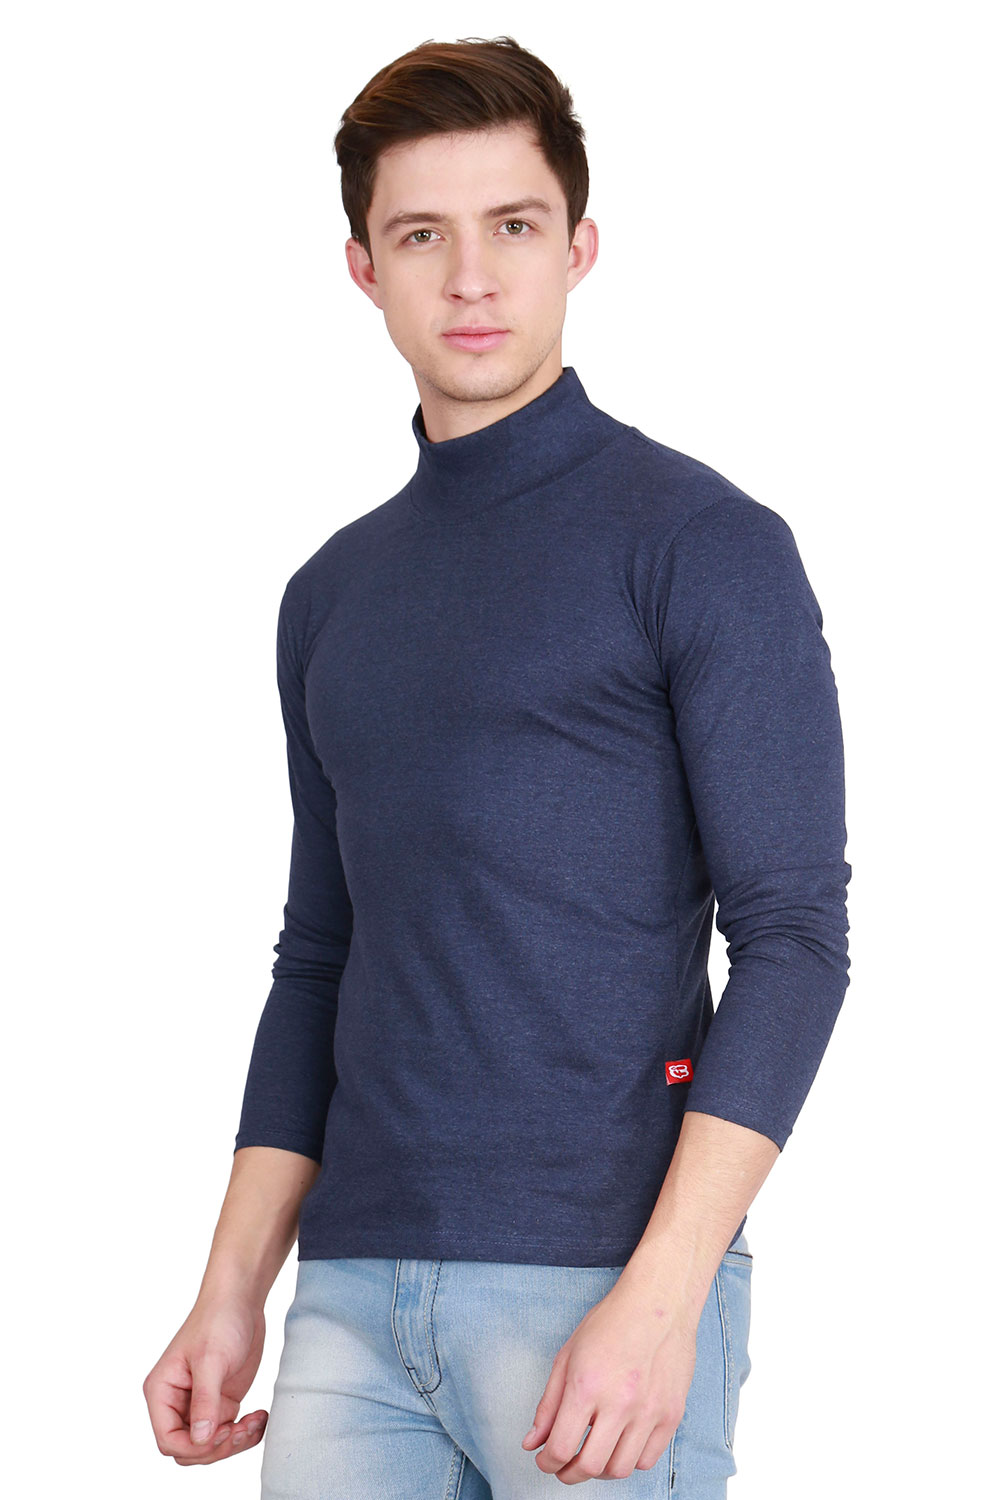 694033c1cf0 Fanideaz Men s Cotton Full Sleeve Classic High Neck T Shirt – Fanideaz